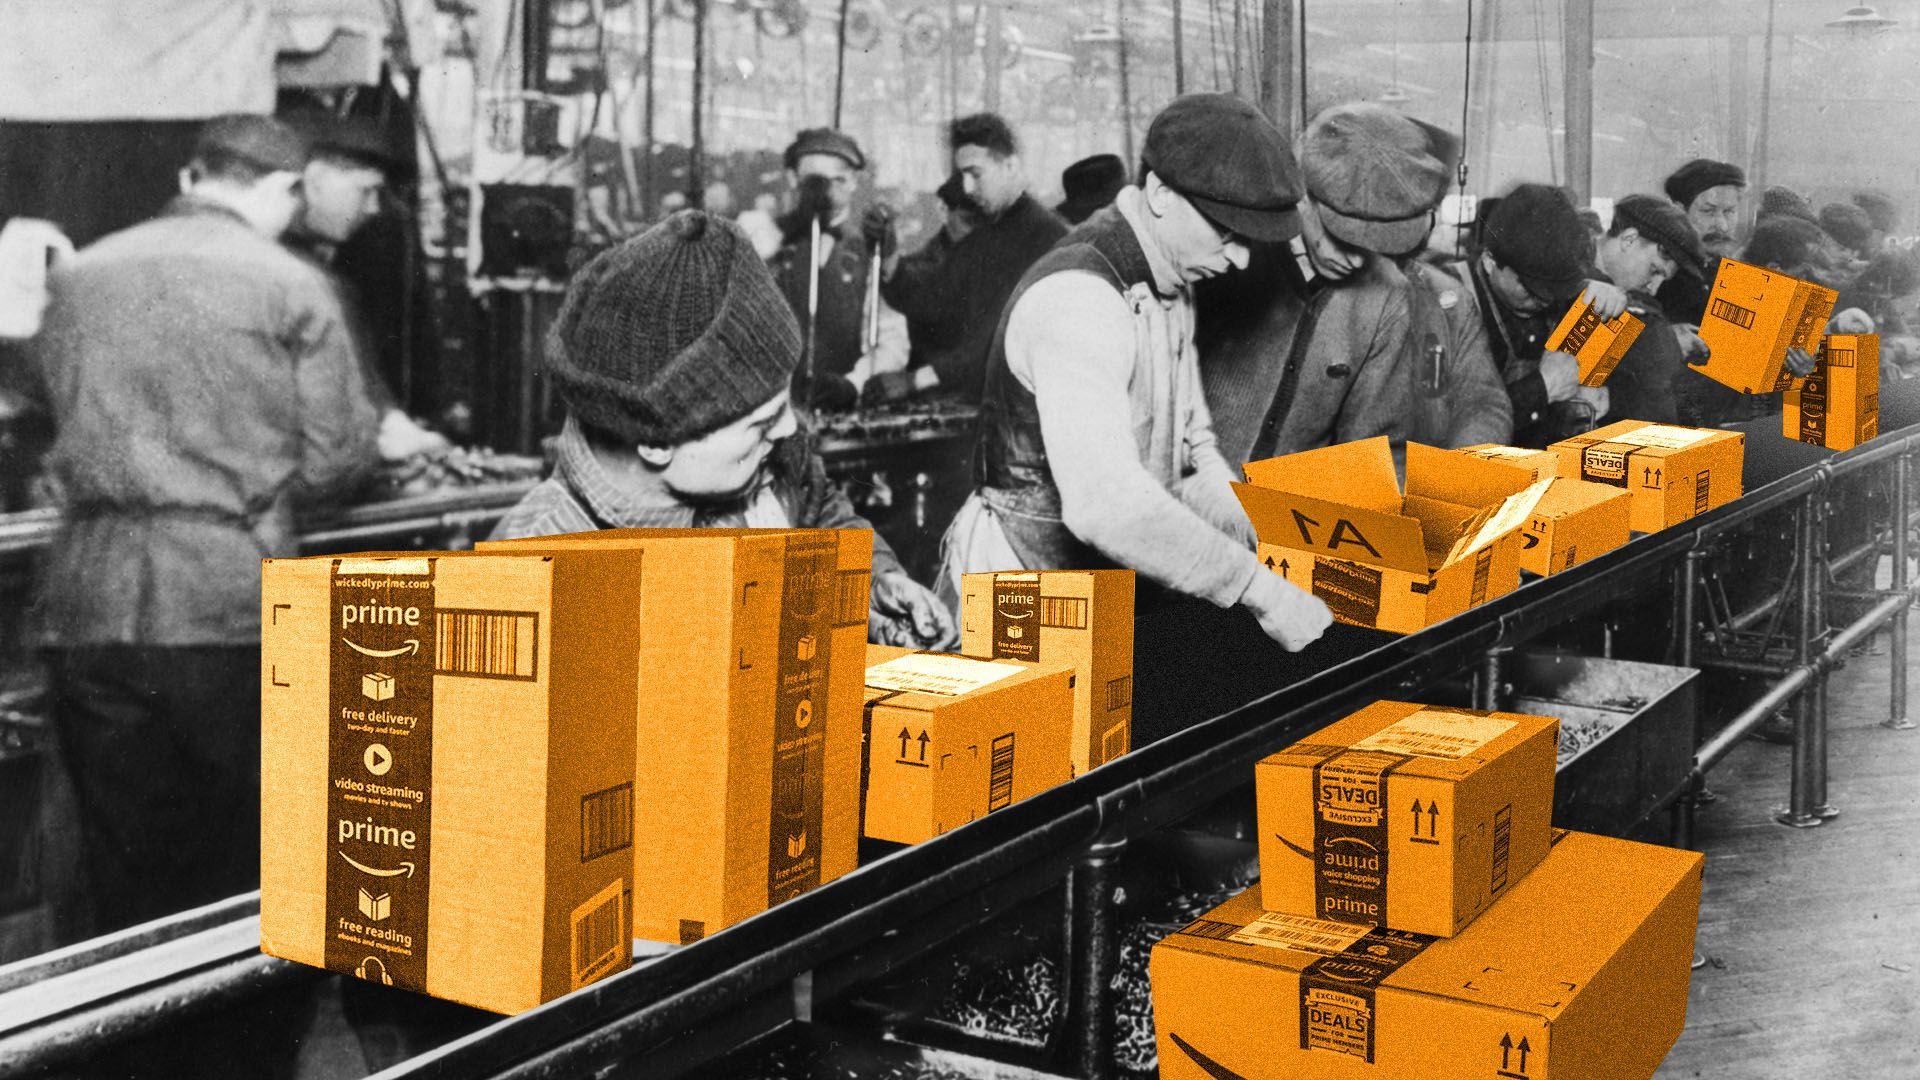 Illustration of turn-of-the-century factory workers processing Amazon packages